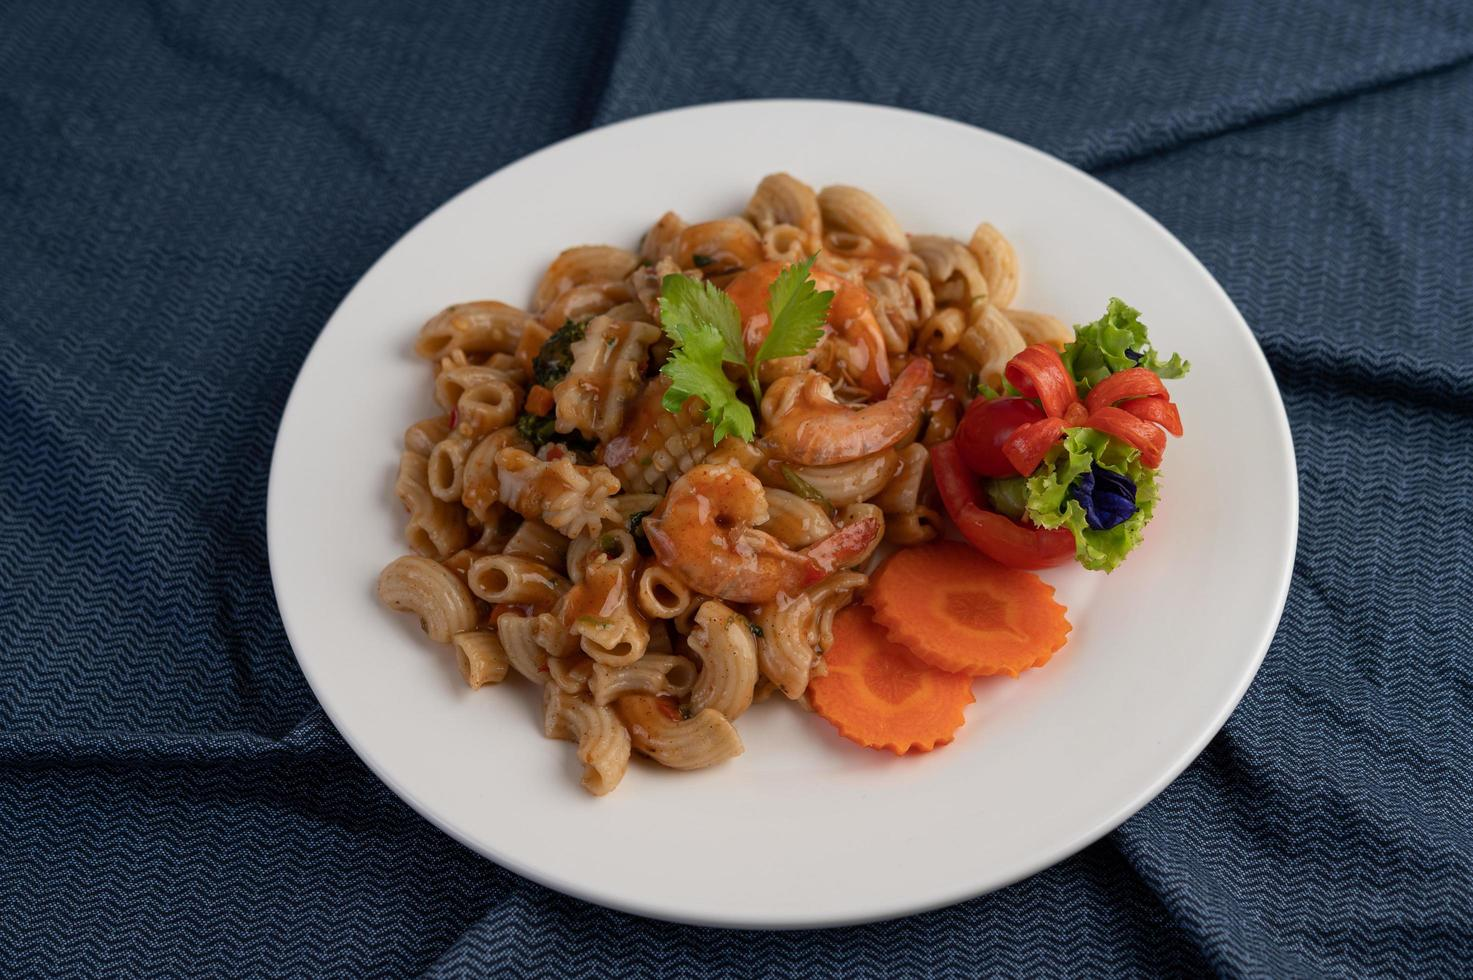 Shrimp and macaroni with carrots, tomatoes and salad photo